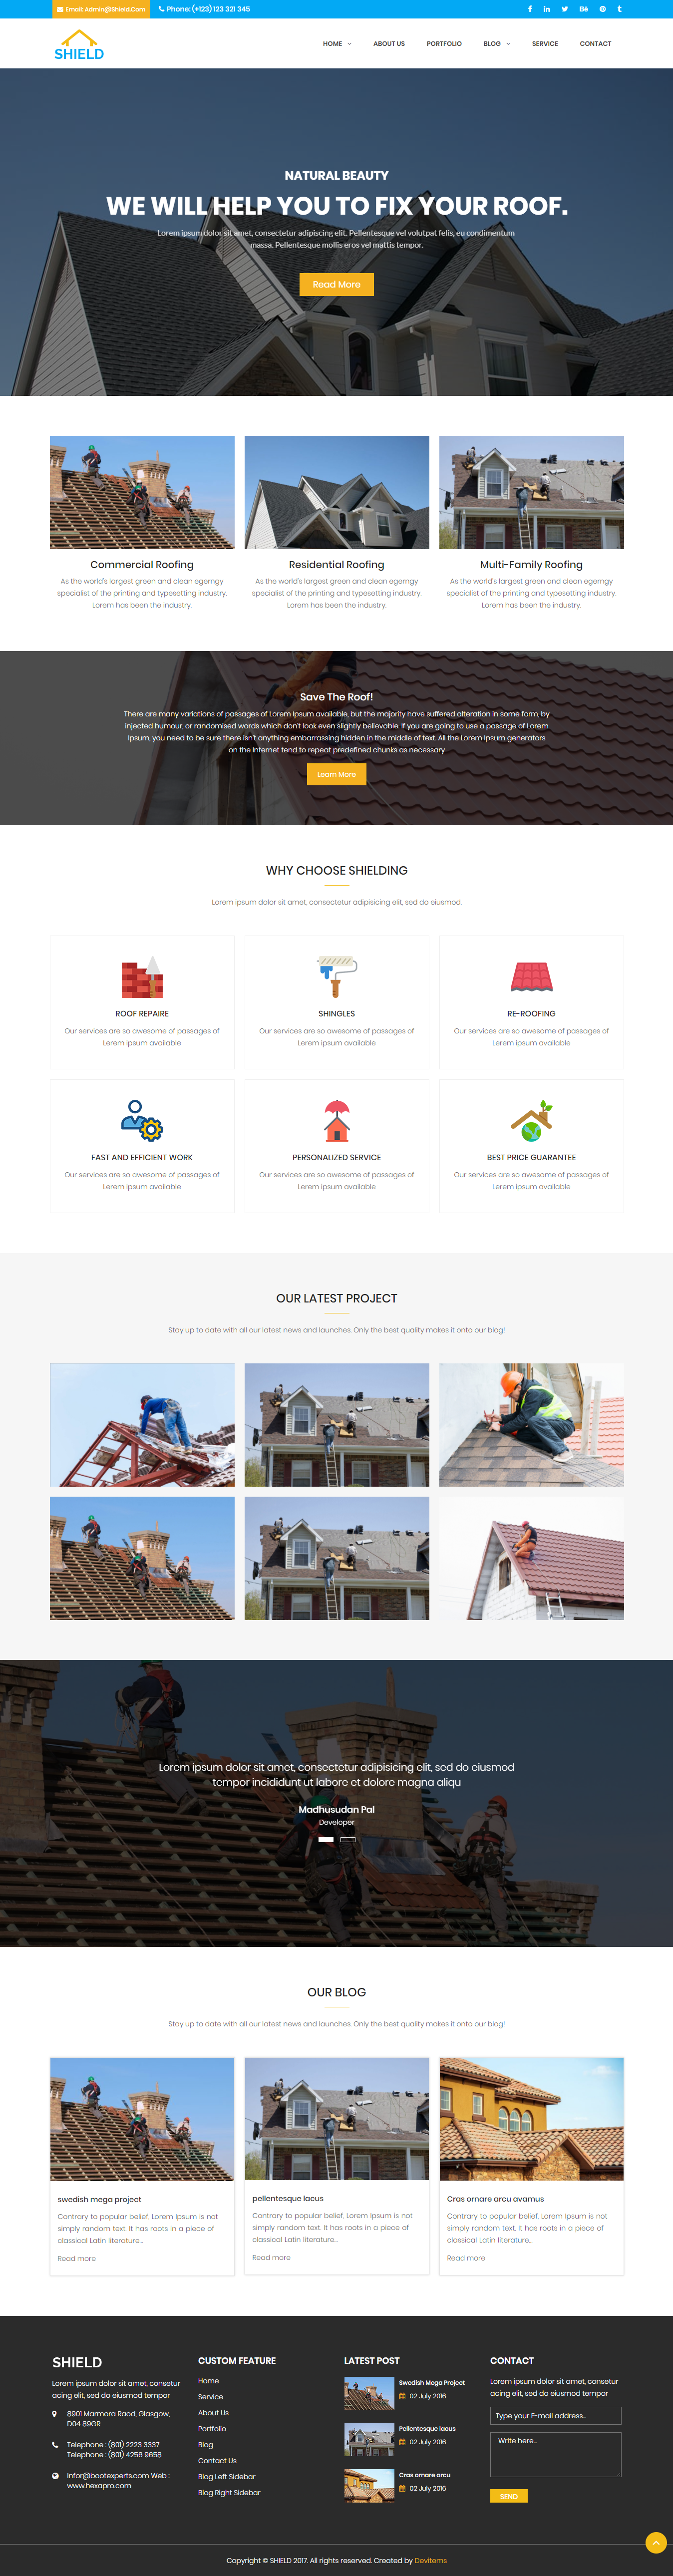 Shield Roofing Service Html Template By Hastech On Dribbble